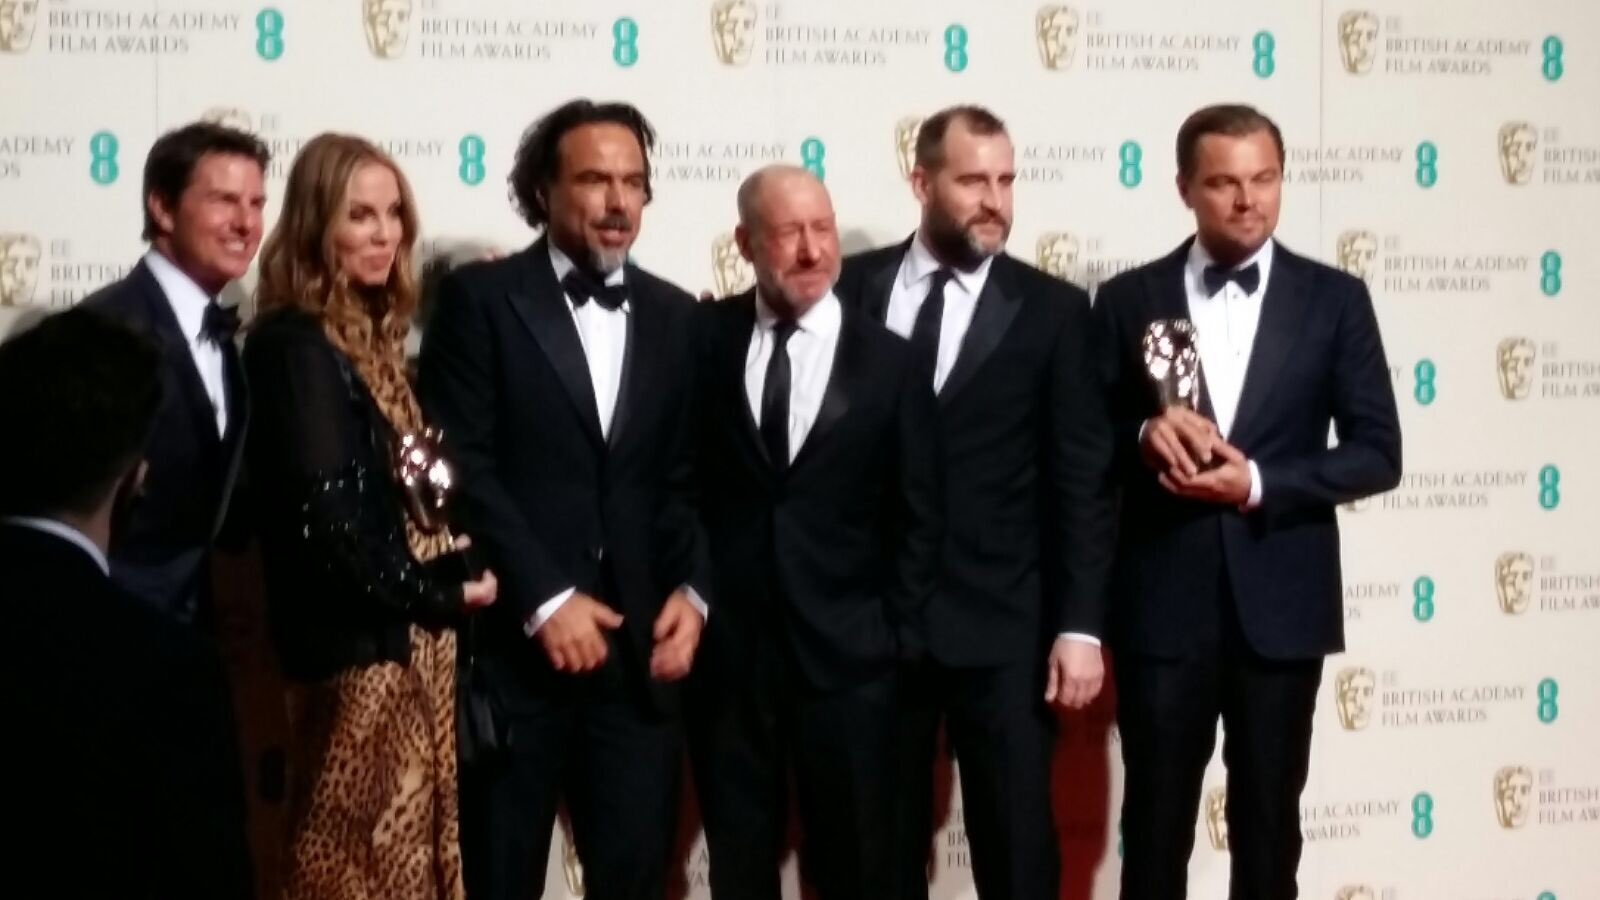 Here they are your #BAFTA starry line-up. Great night 🌟🌟🌟🌟🌟 https://t.co/M8hvOWTpyP